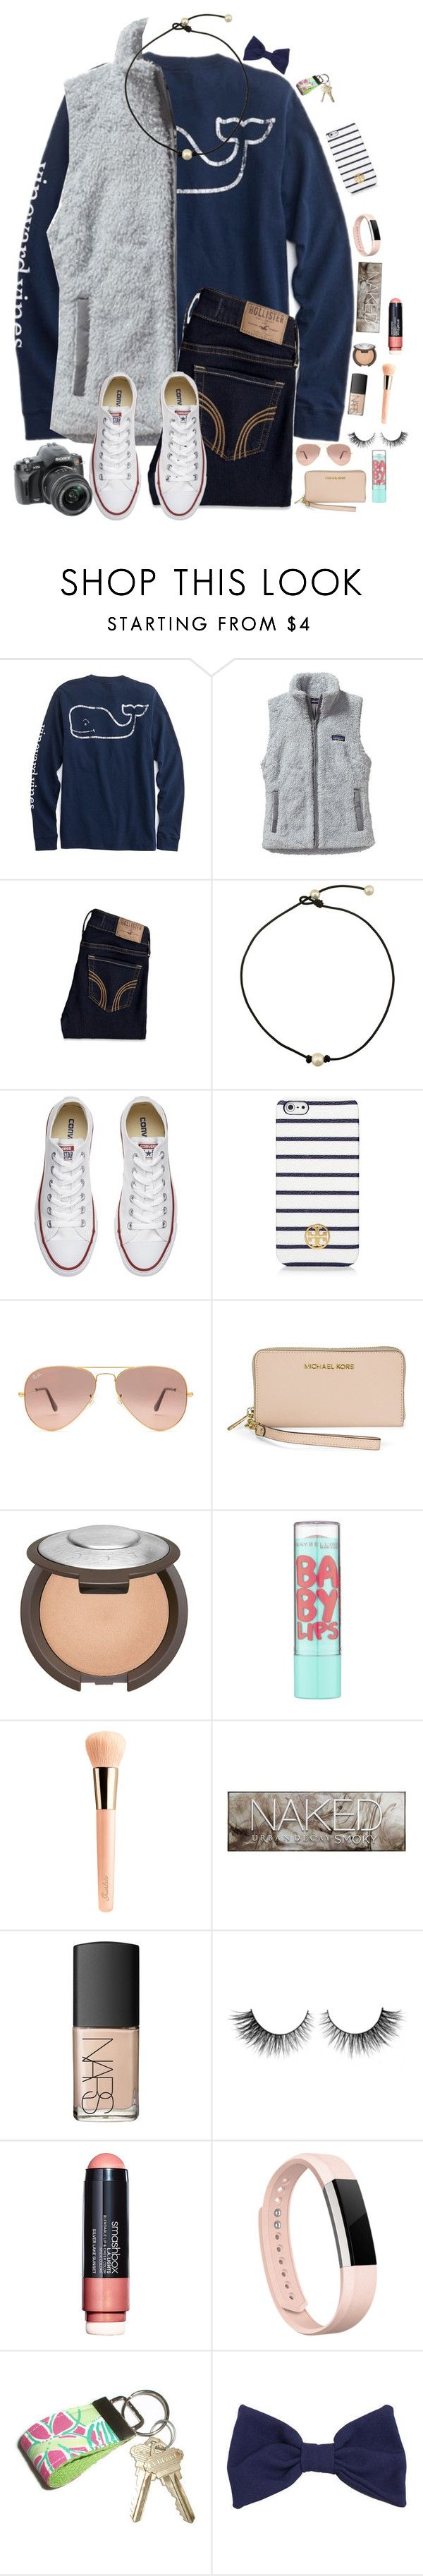 """School Festival 🎀💙 // Day 1"" by maxilicious ❤ liked on Polyvore featuring Patagonia, Hollister Co., Converse, Tory Burch, Ray-Ban, Michael Kors, Maybelline, Guerlain, Urban Decay and NARS Cosmetics"